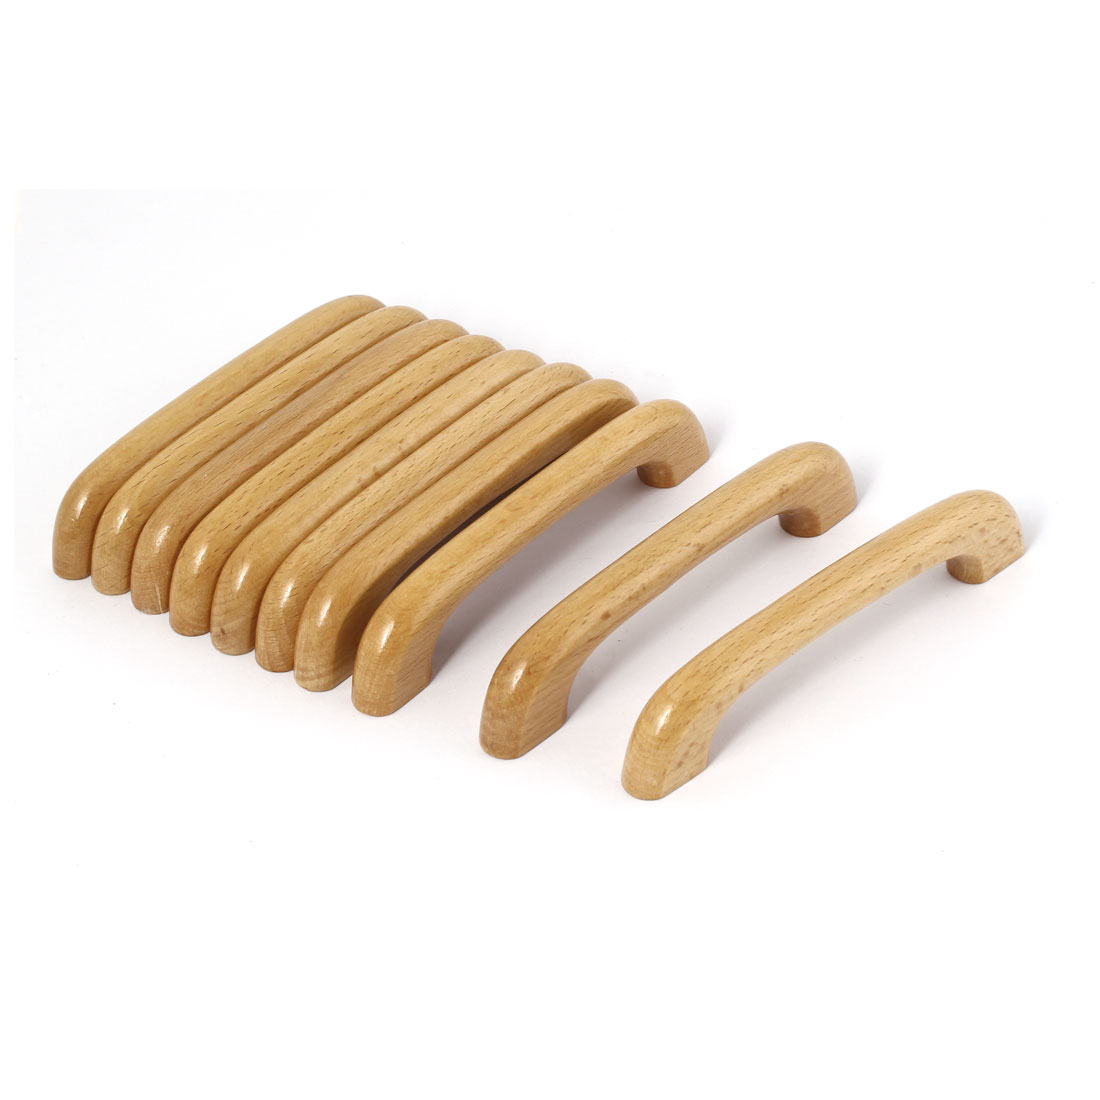 Cupboard Door Drawer Hardware Wood Pull Handles Beige 3.5mm Thread Hole 10 Pcs